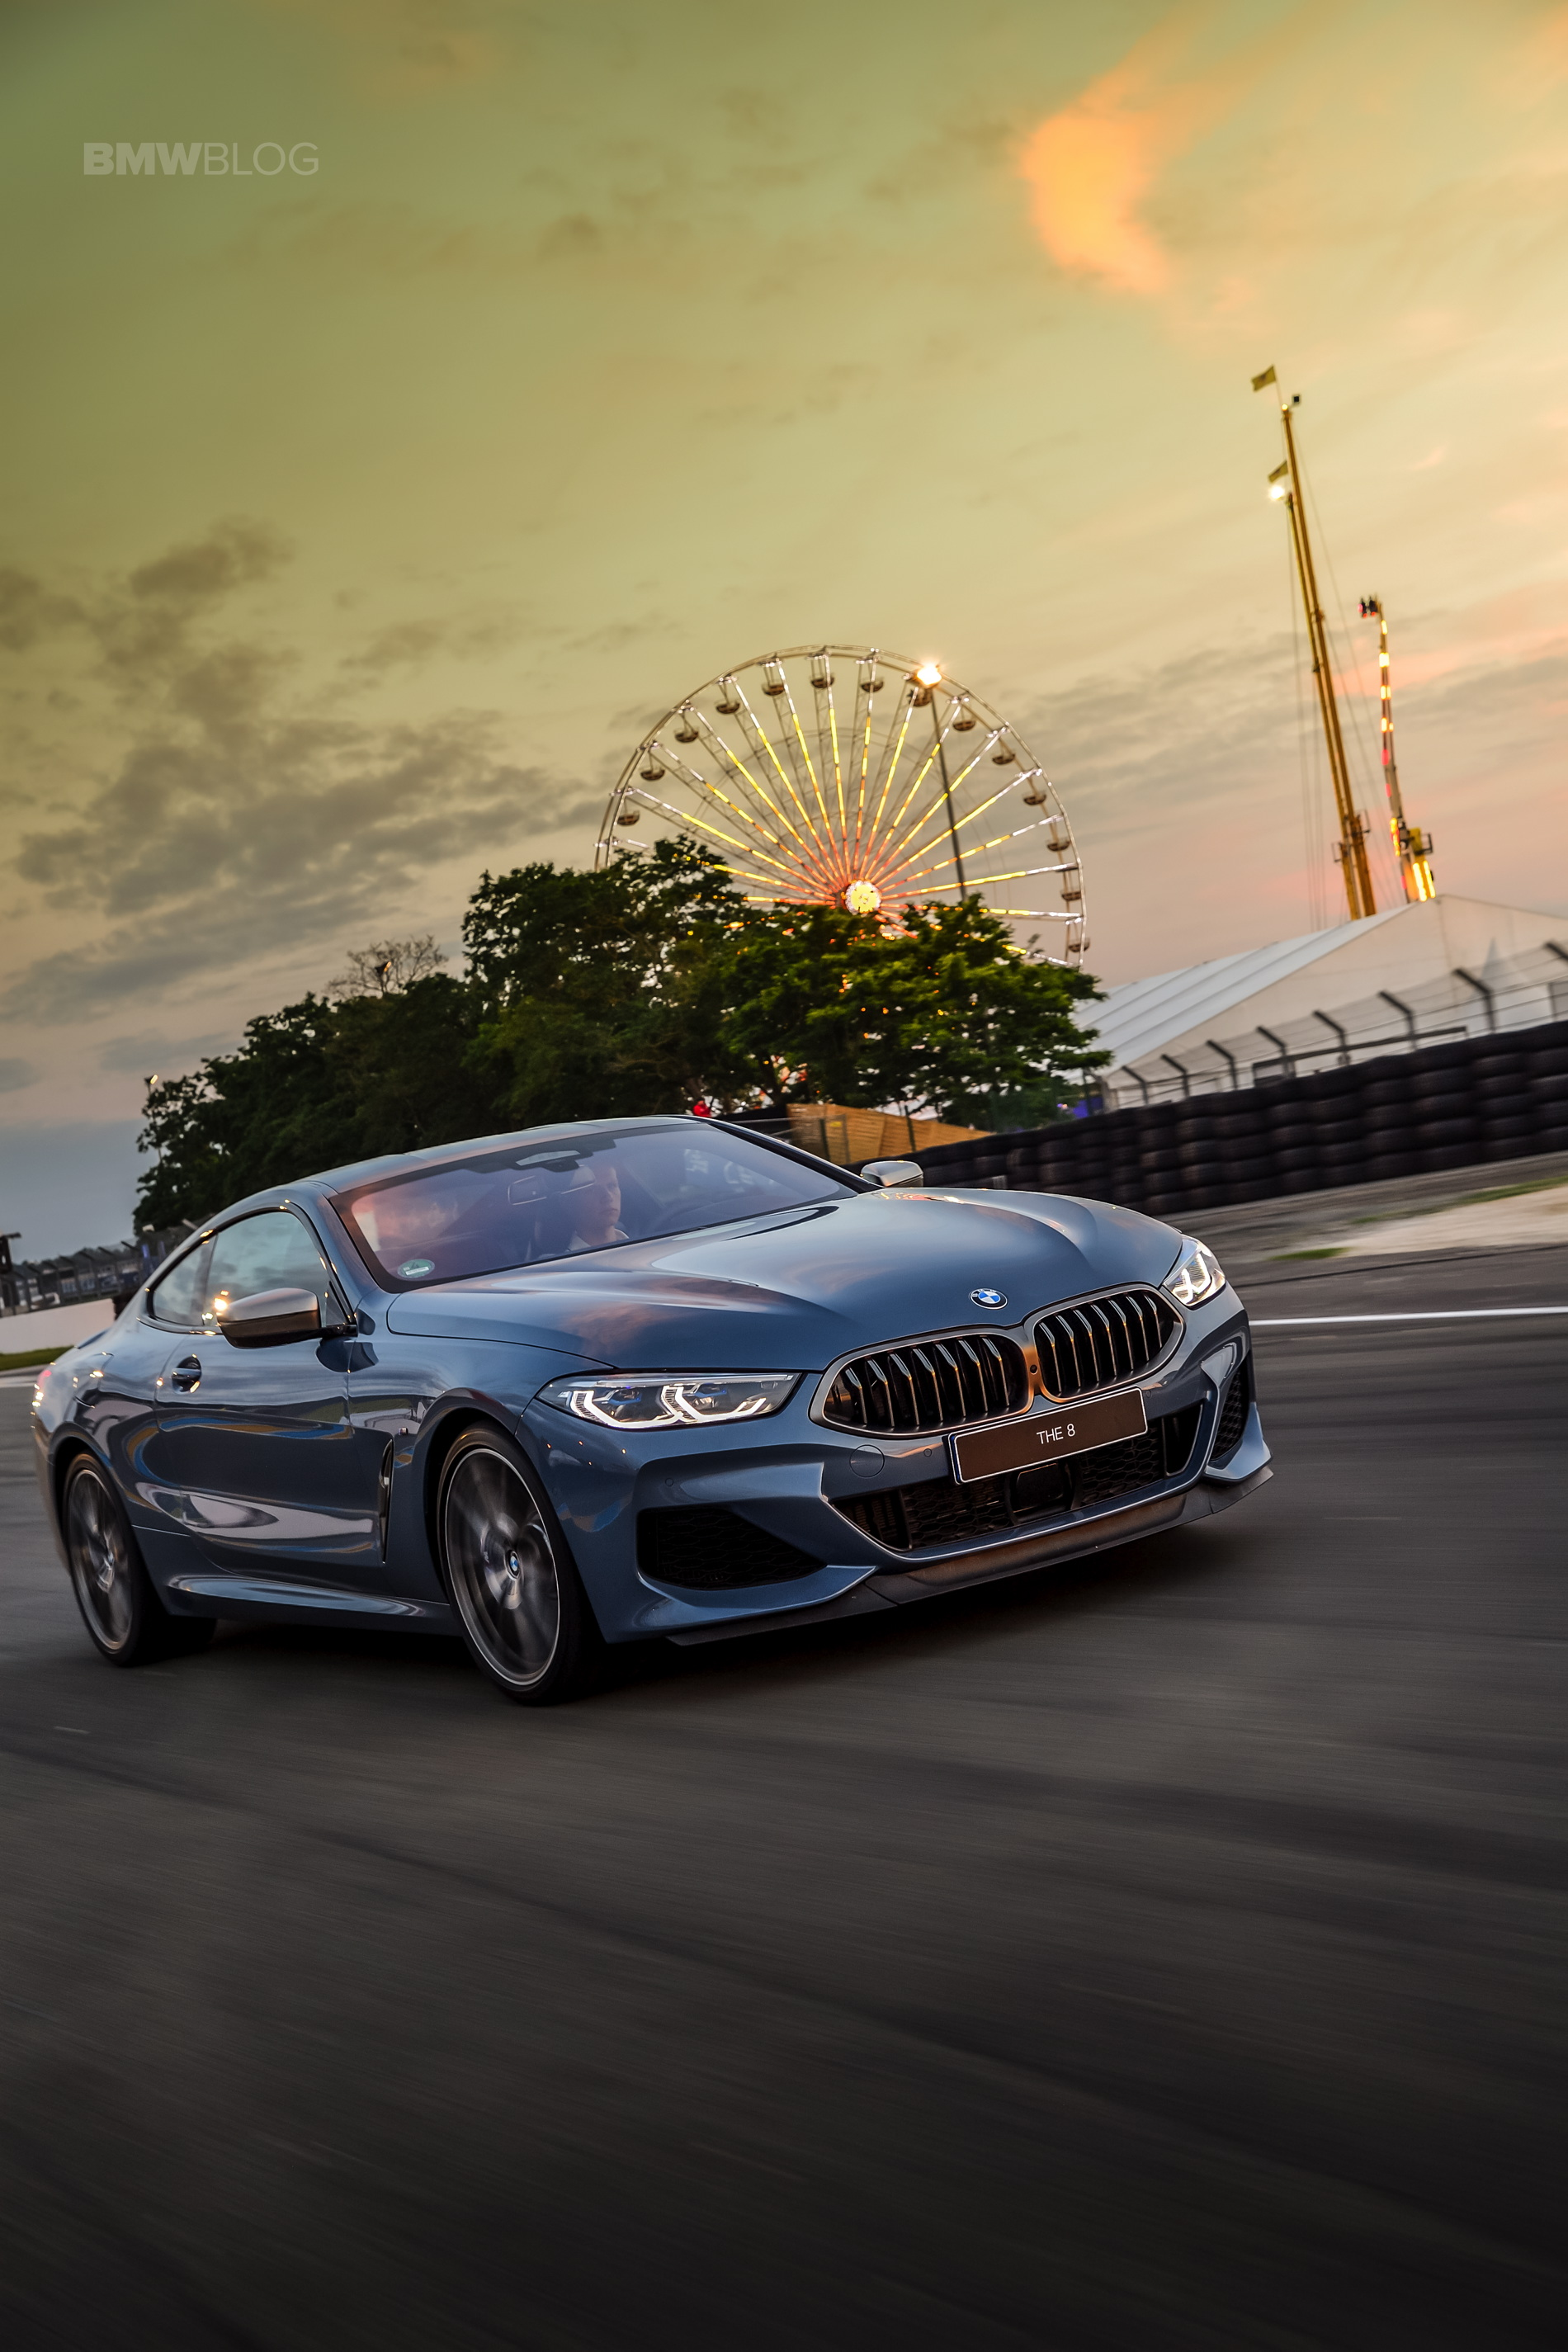 BMW 8 Series track Le mans 2018 29